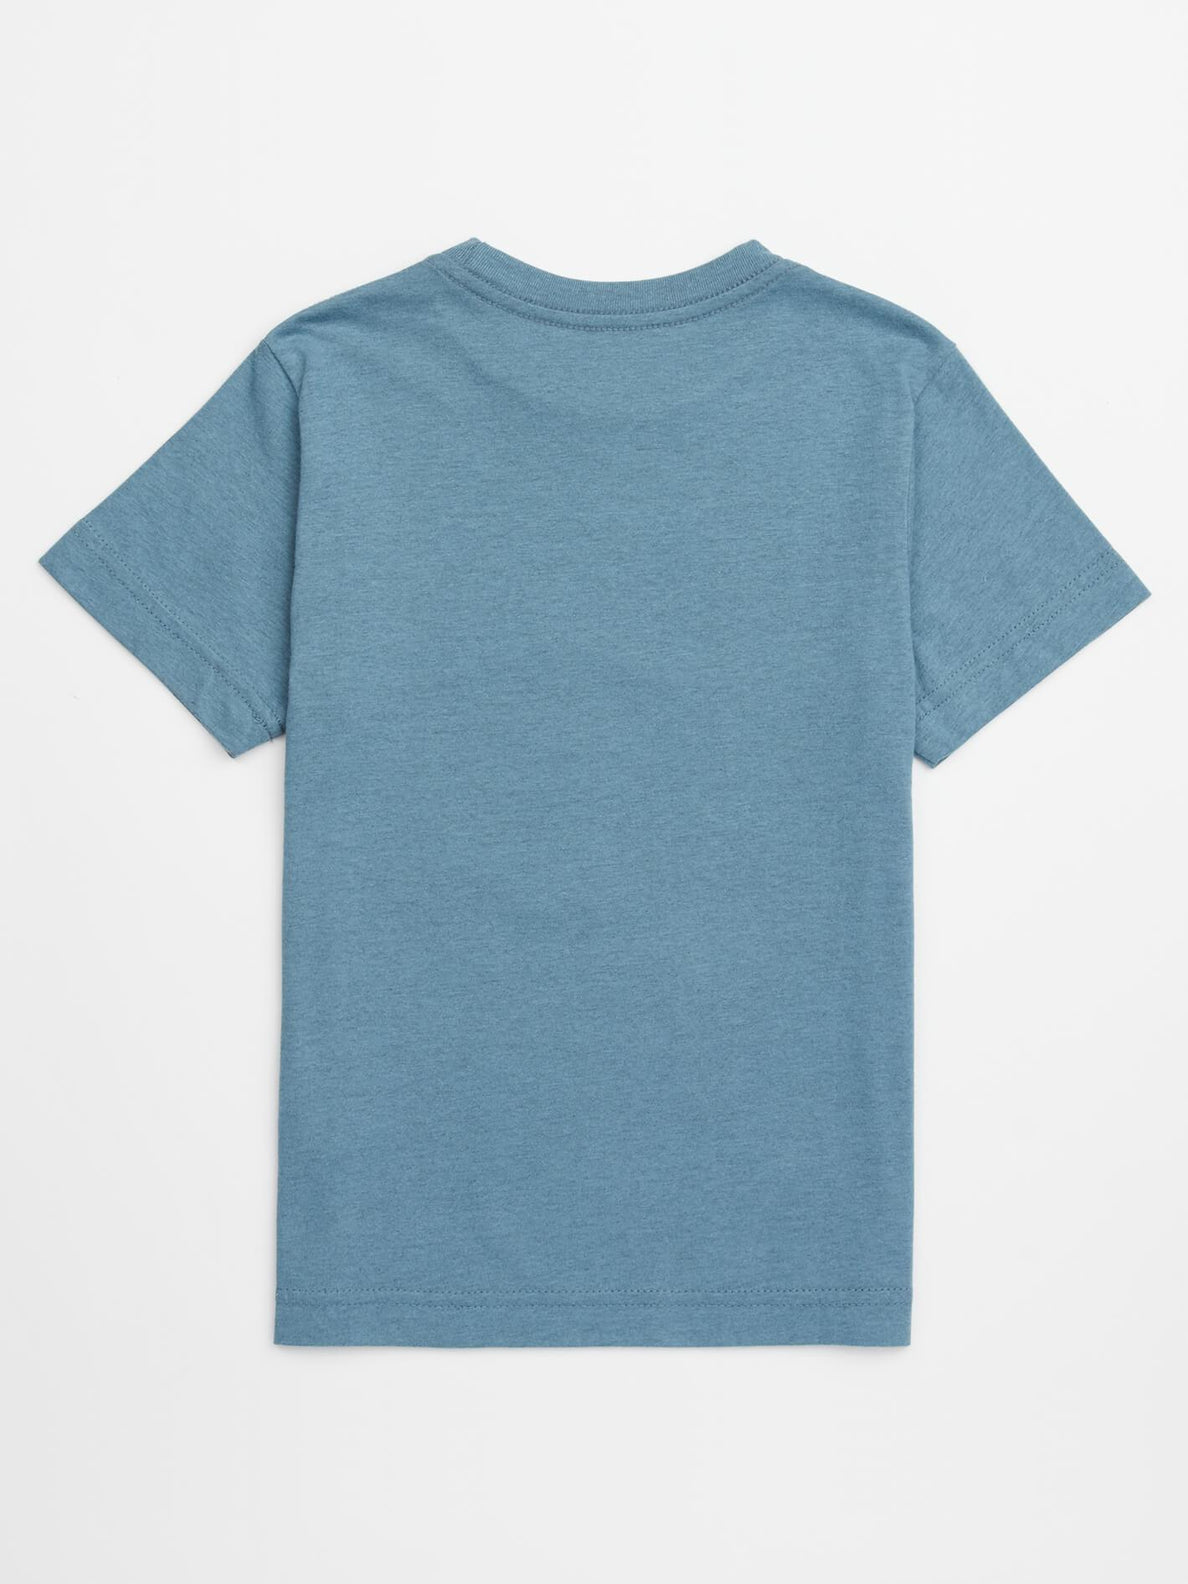 Little Boys Stoker Tee In Wrecked Indigo, Back View